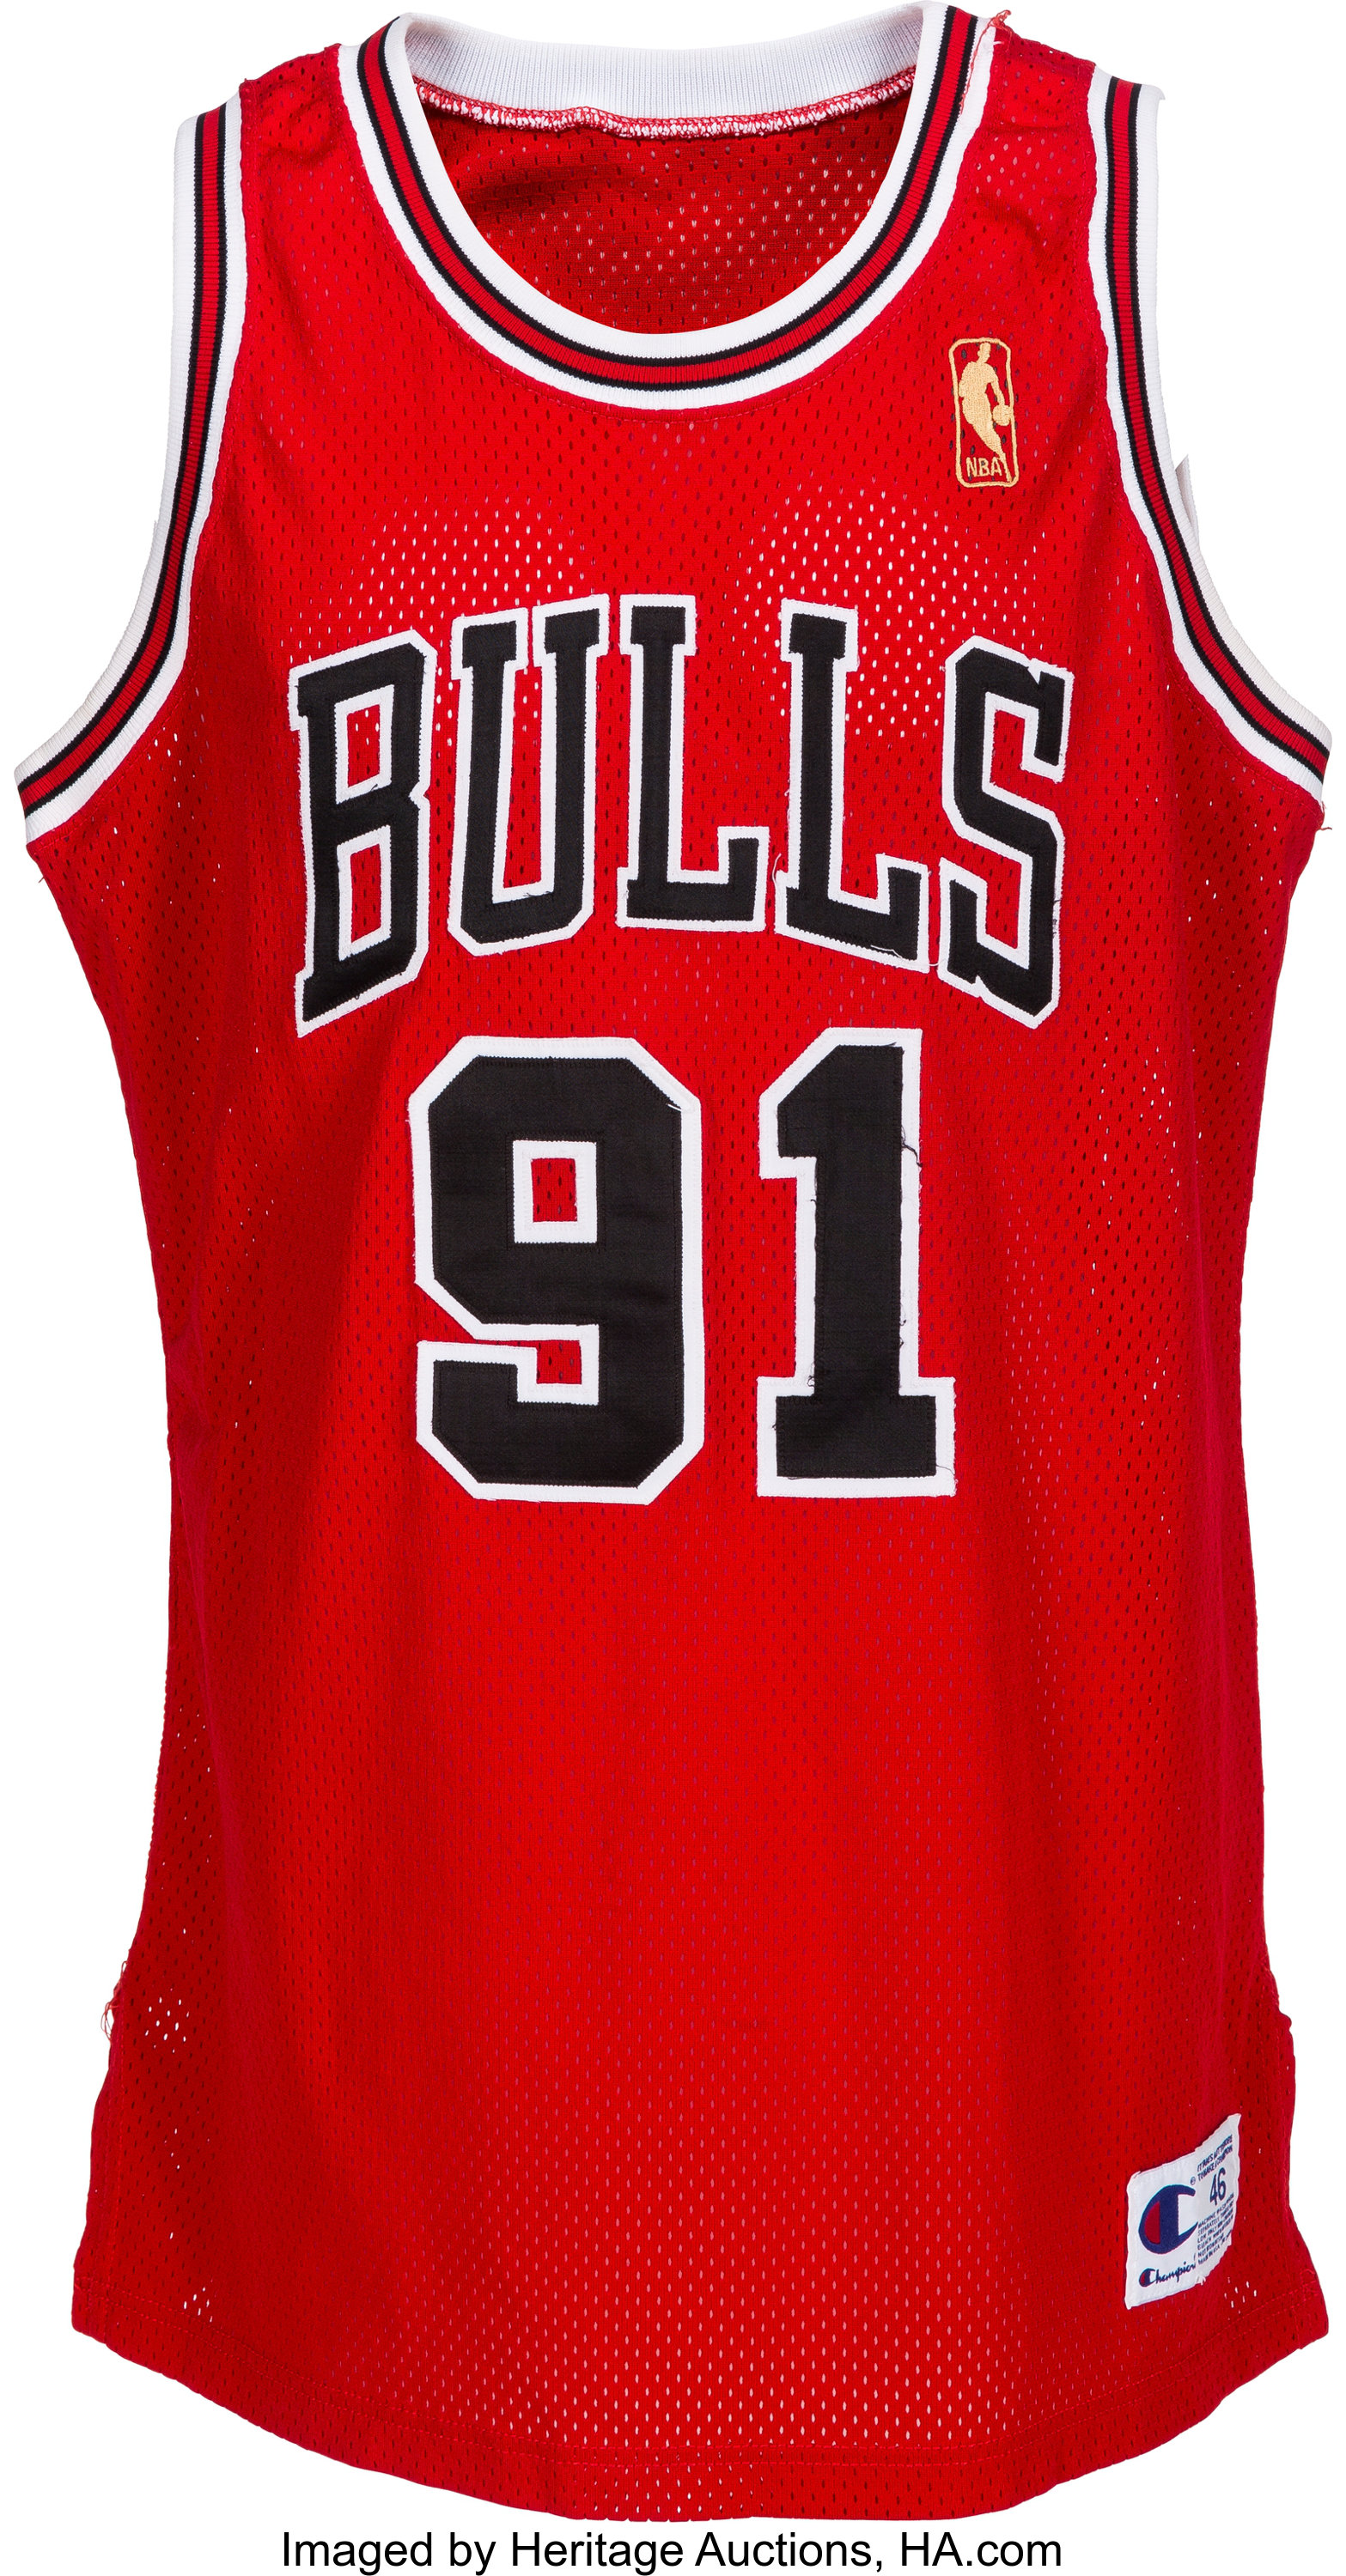 the latest 969e9 80f9d 1996-97 Dennis Rodman Game Worn Signed Chicago Bulls Uniform ...